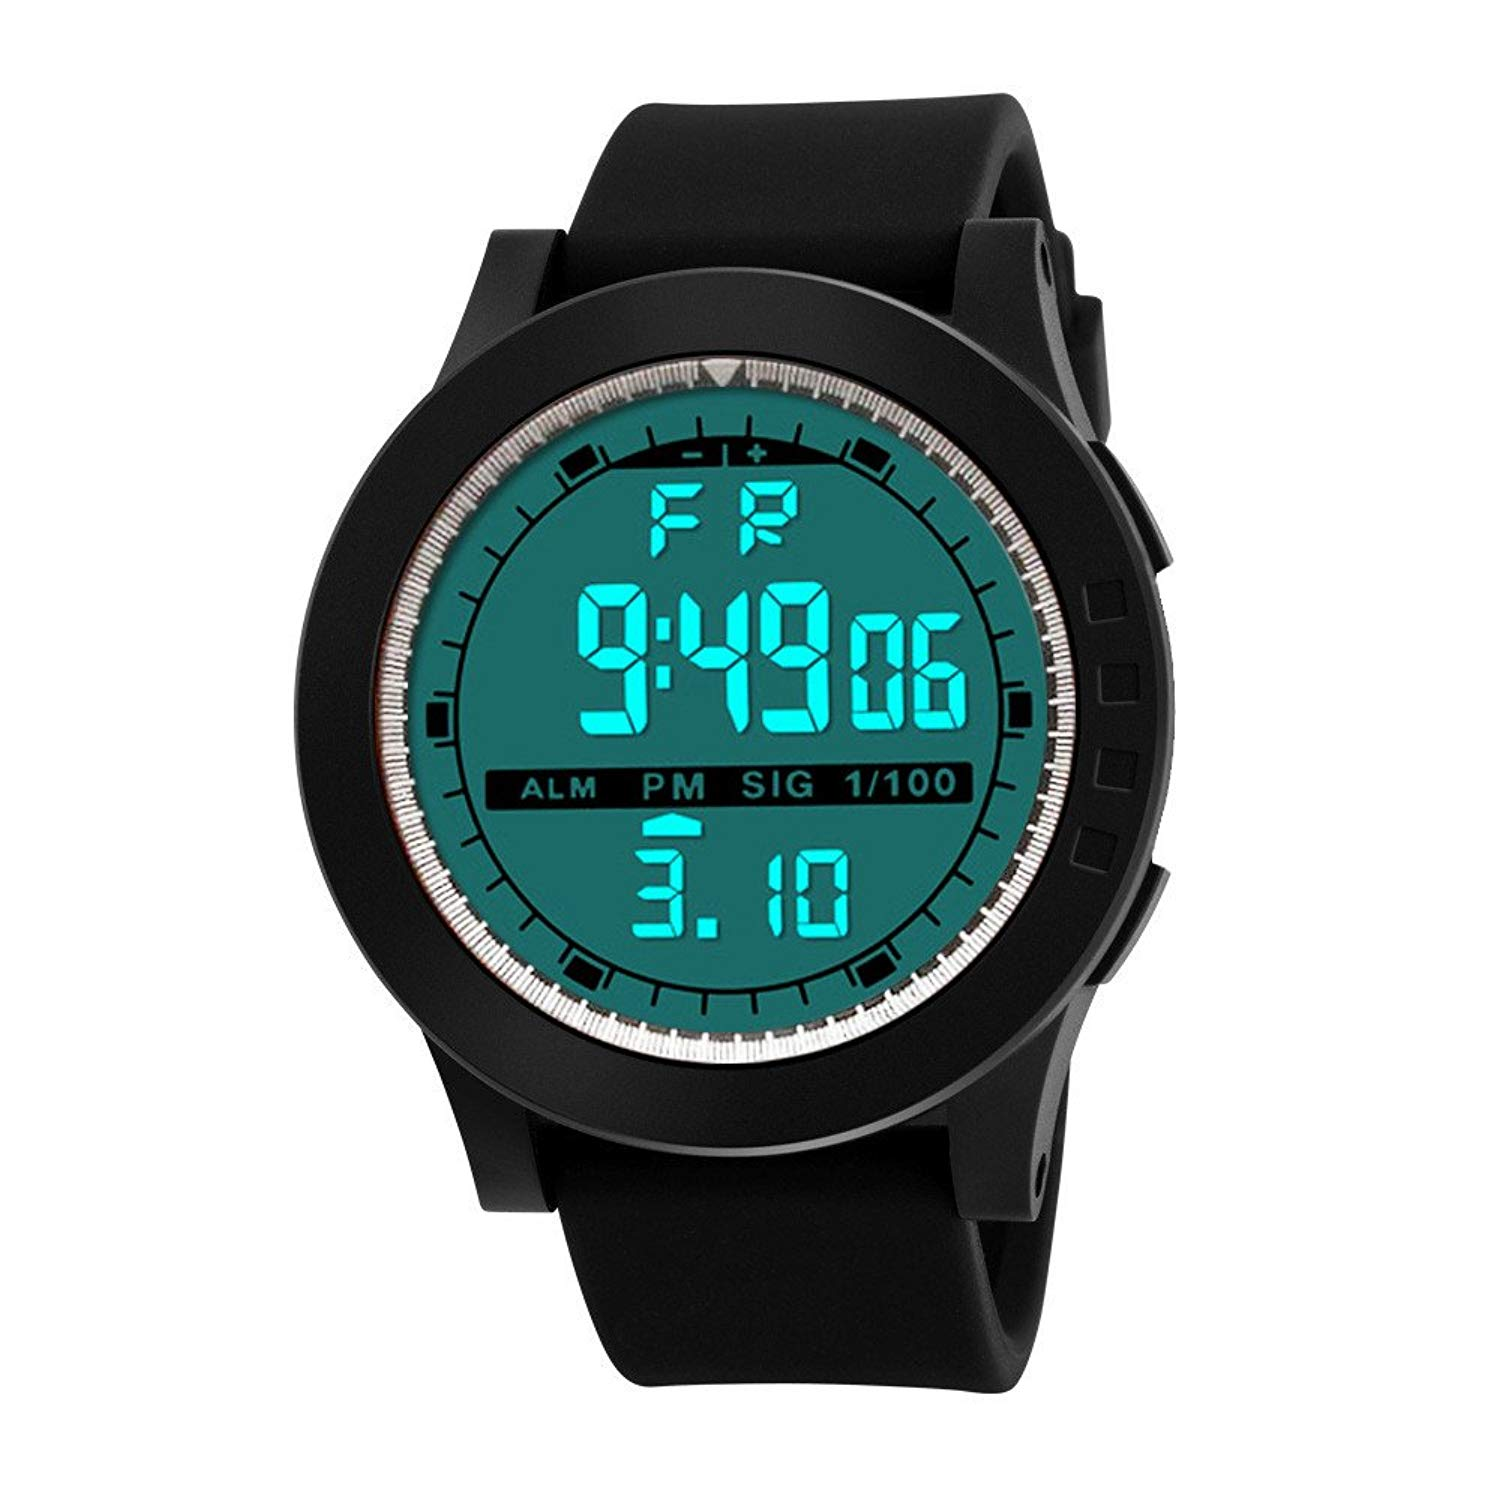 COOKI Mens Digital Sports Watches LED Screen Large Face Waterproof Military Watches and Casual Waterproof Luminous Simple Army Watch Stopwatch Alarm, Mens Watches on Sale Clearance